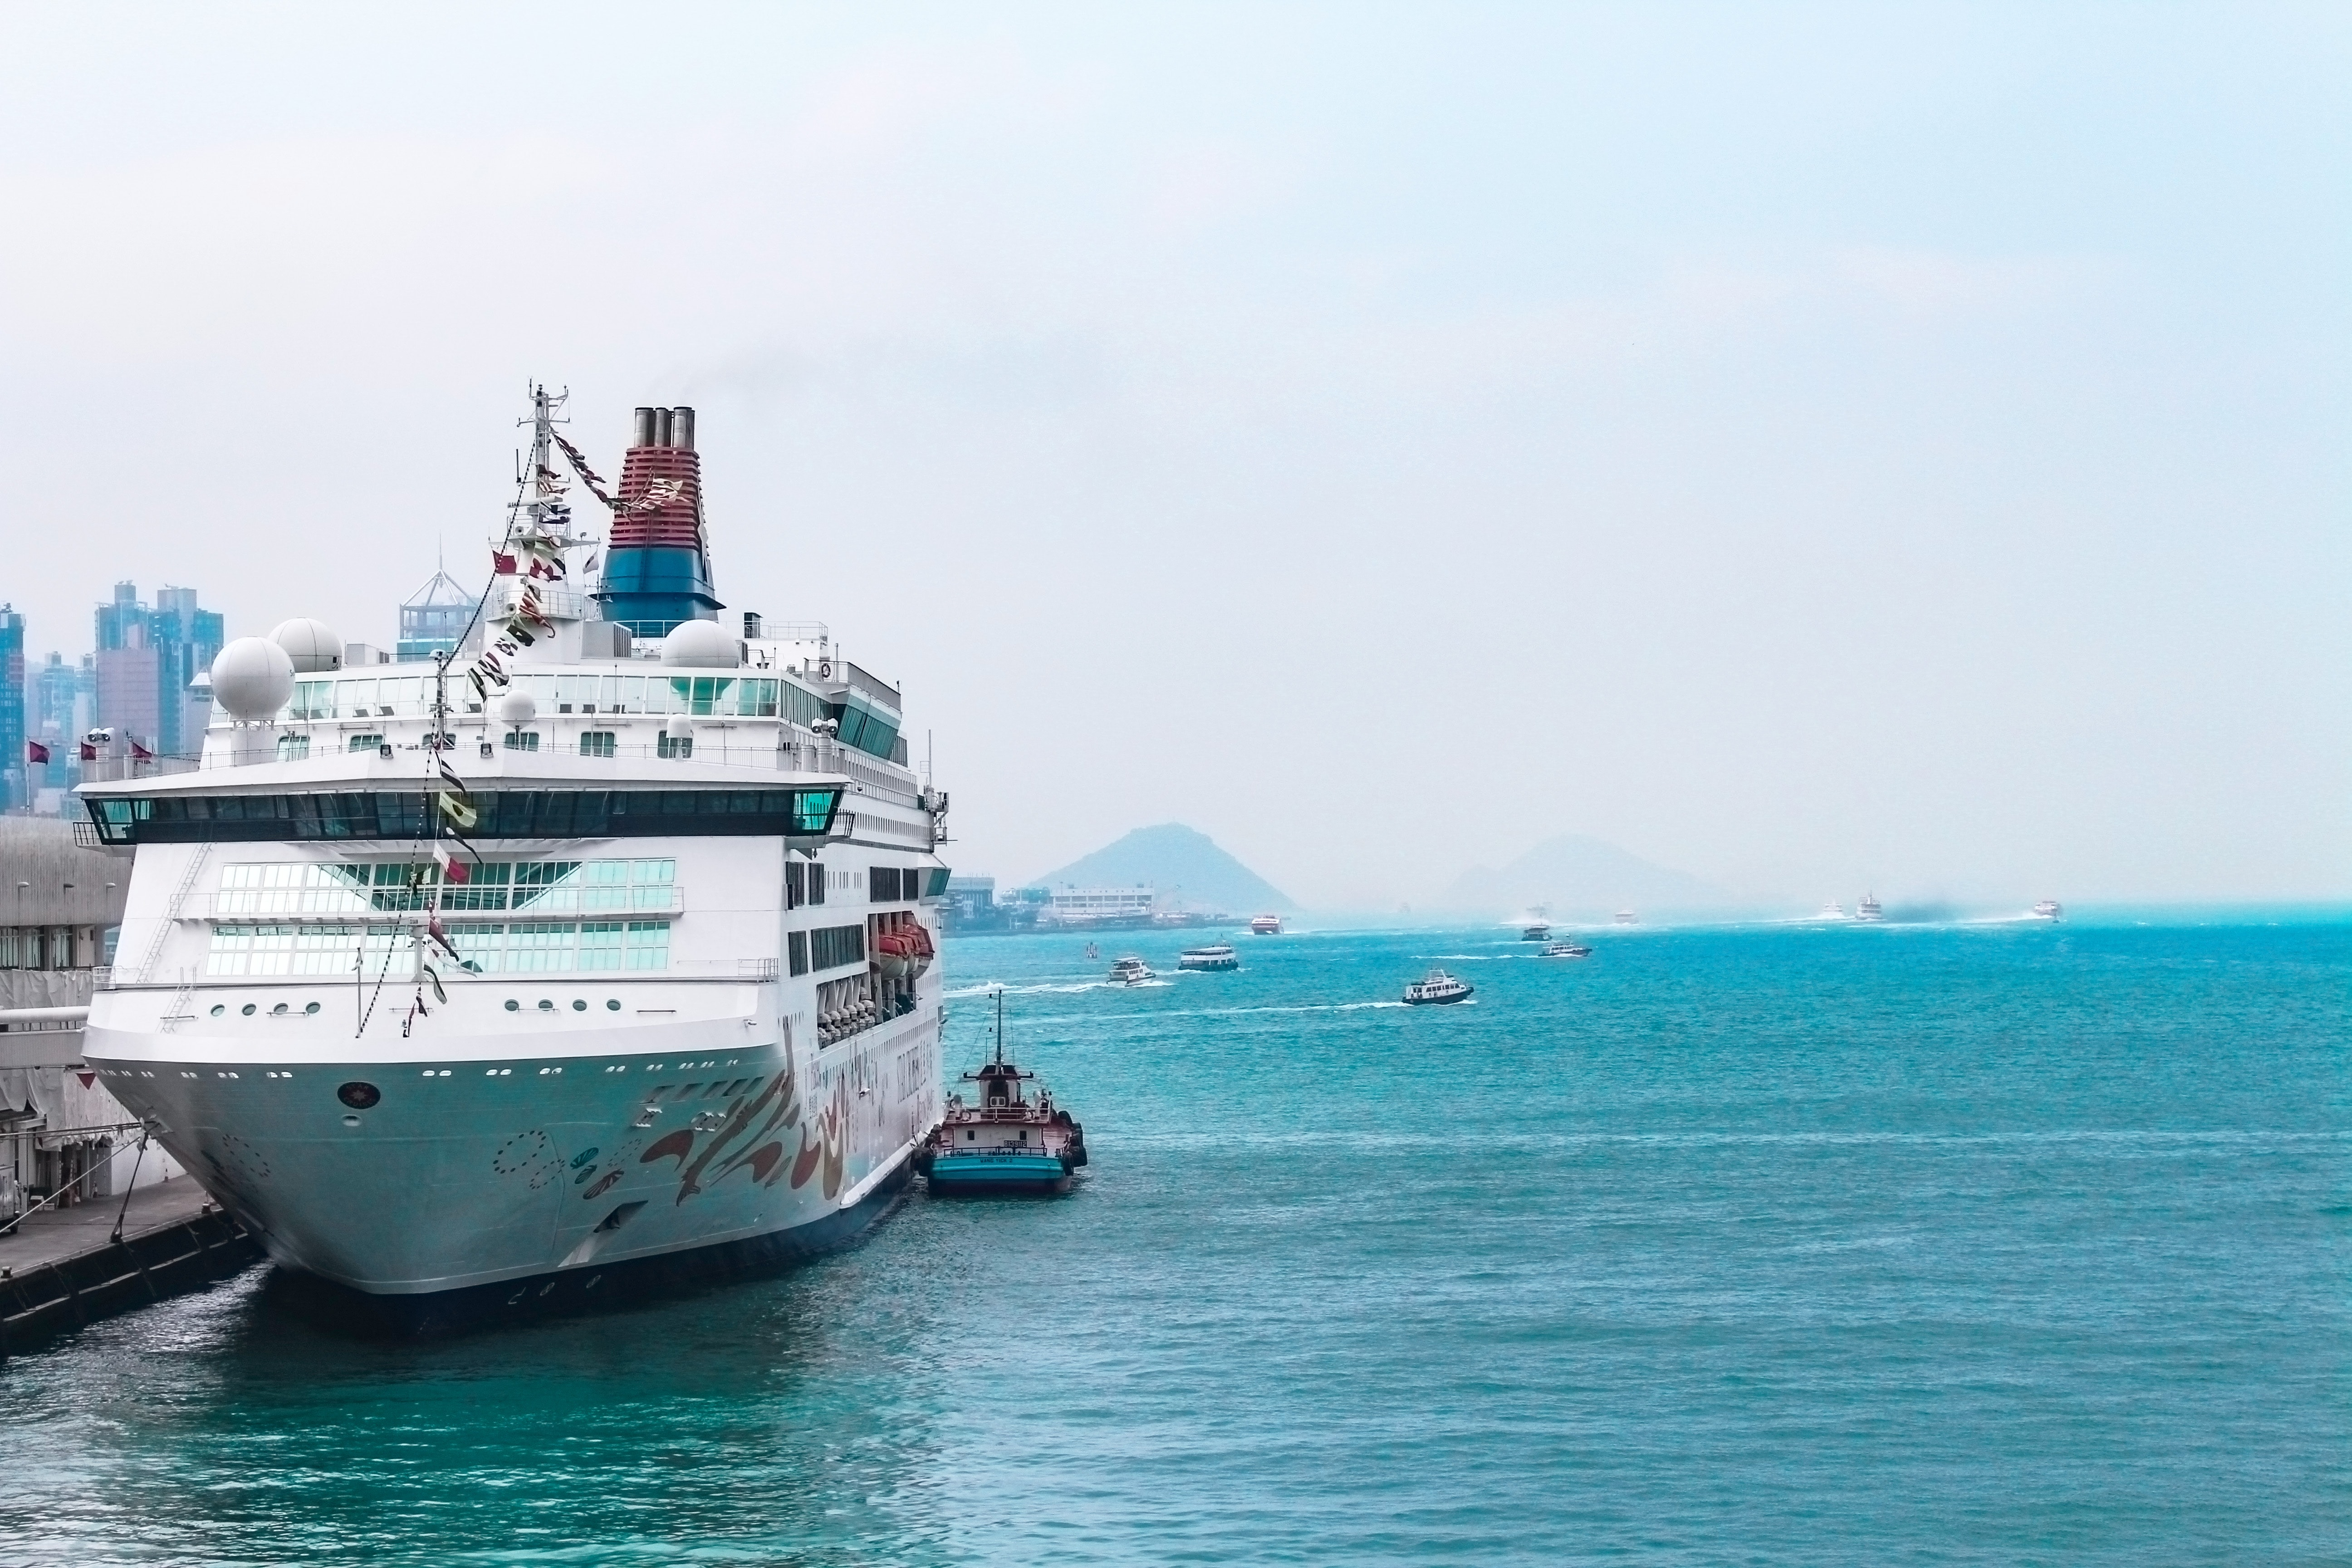 White Cruise Ship Docking in Port, Bay, Outdoors, Water, Vessels, HQ Photo